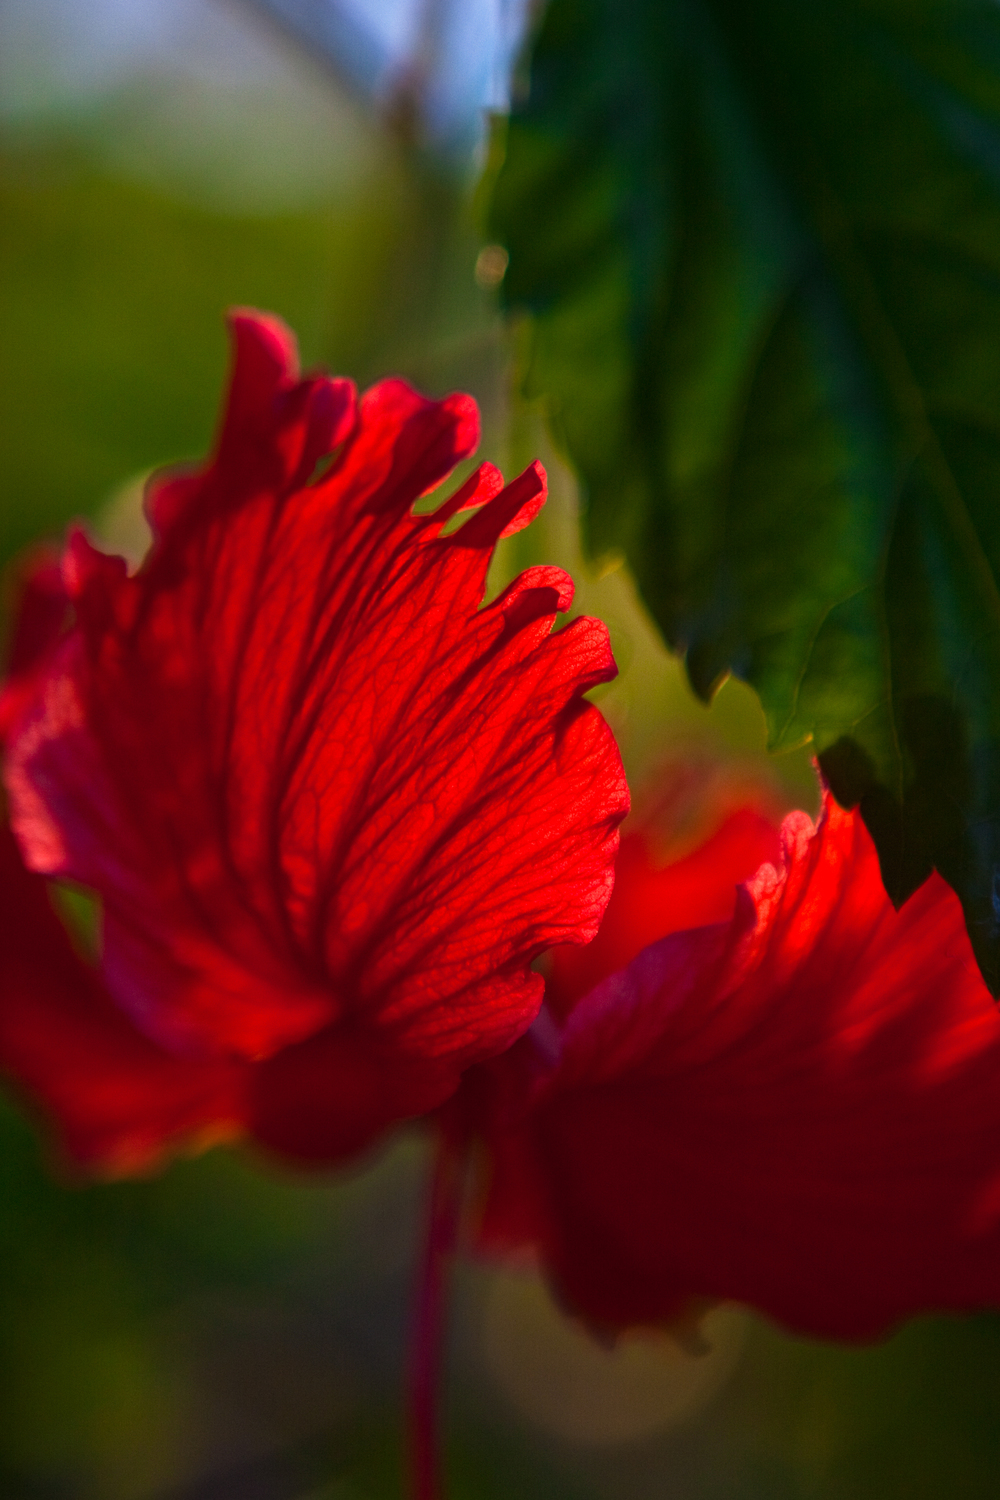 Backlit detail of red flowers and green leaves.